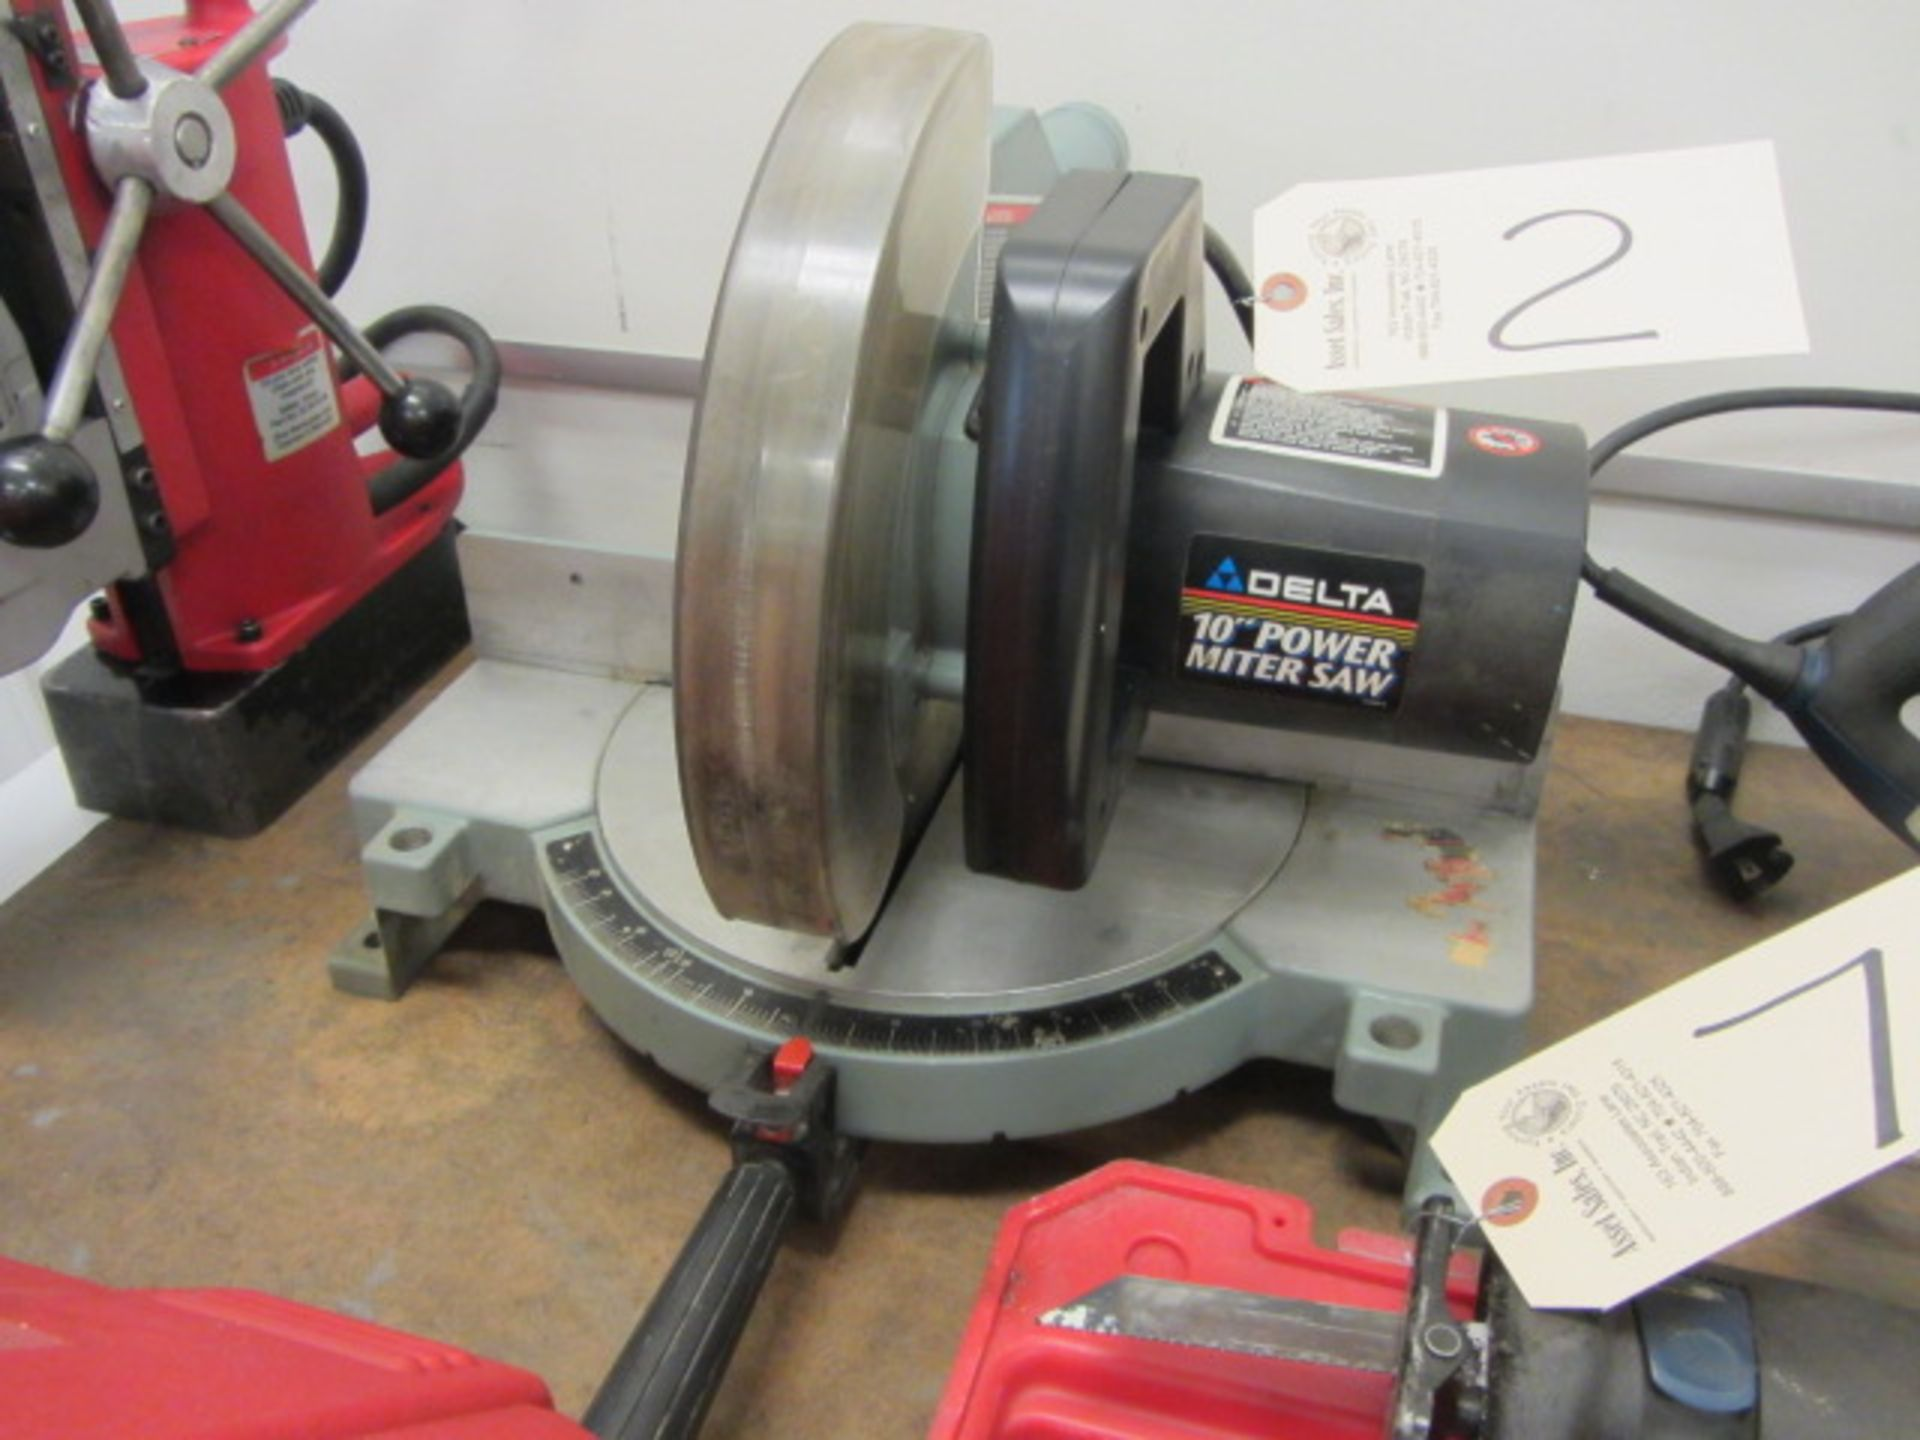 Lot 2 - Delta 10'' Power Mitre Saw